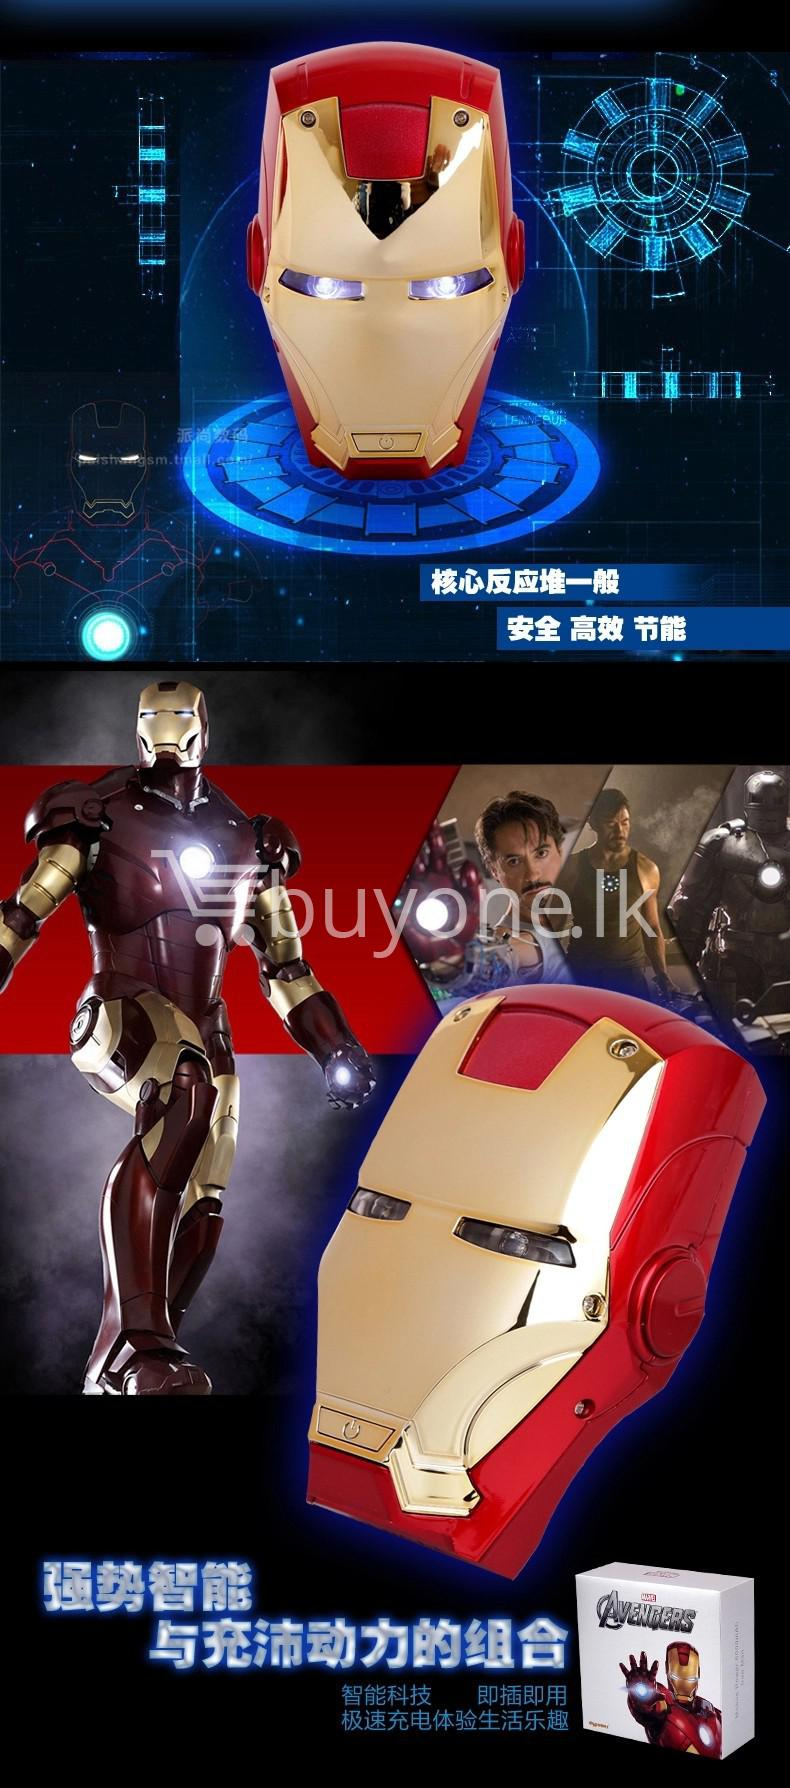 newest iron man portable power bank 6000mah for iphone samsung htc nokia oneplus mobile store special best offer buy one lk sri lanka 06542 - Newest Iron Man Portable Power Bank 6000mAh for iPhone, Samsung, HTC, Nokia, OnePlus